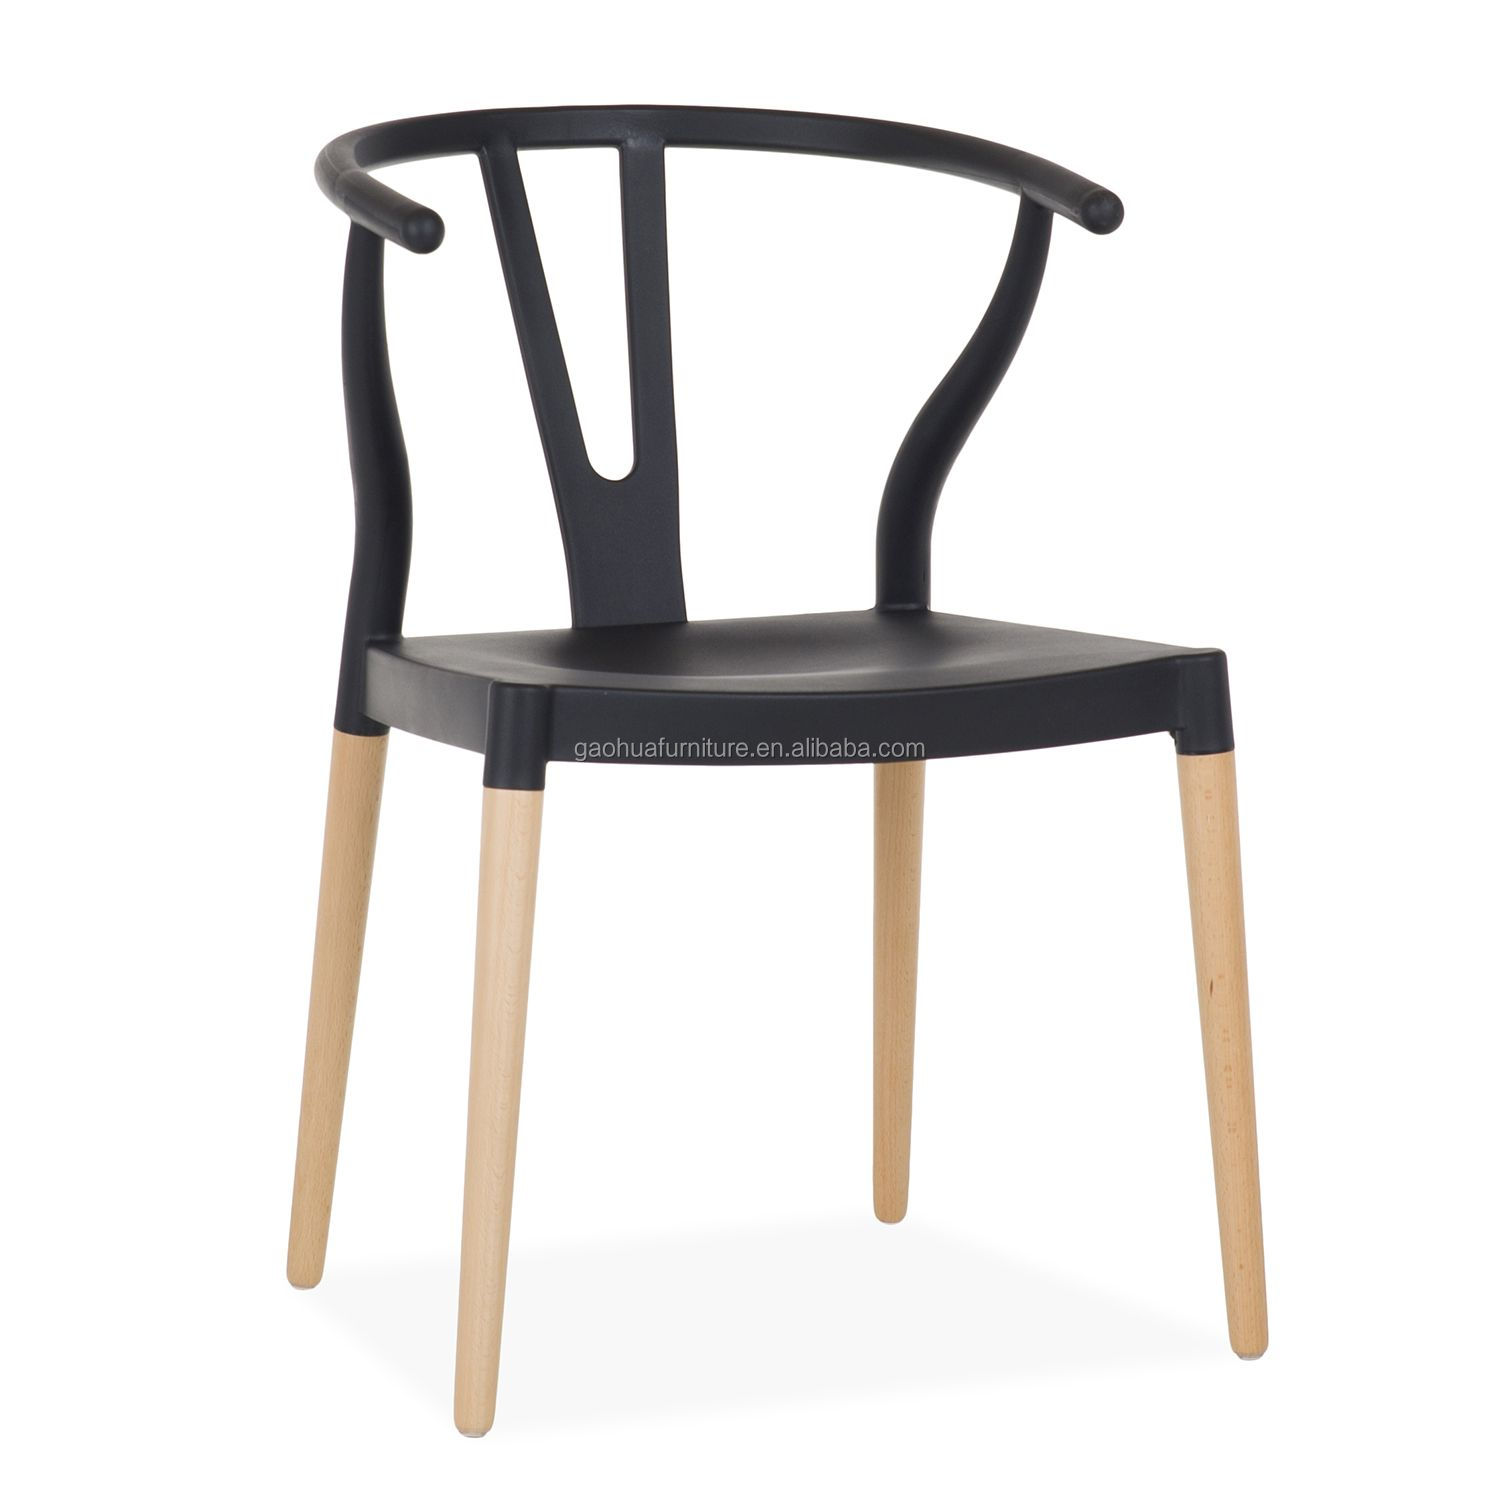 Picture of: Y Chair Plastic Dining Room Chair Black Modern Buy Plastic Dining Chair Modern Dining Room Chairs Black Dining Chair Product On Alibaba Com